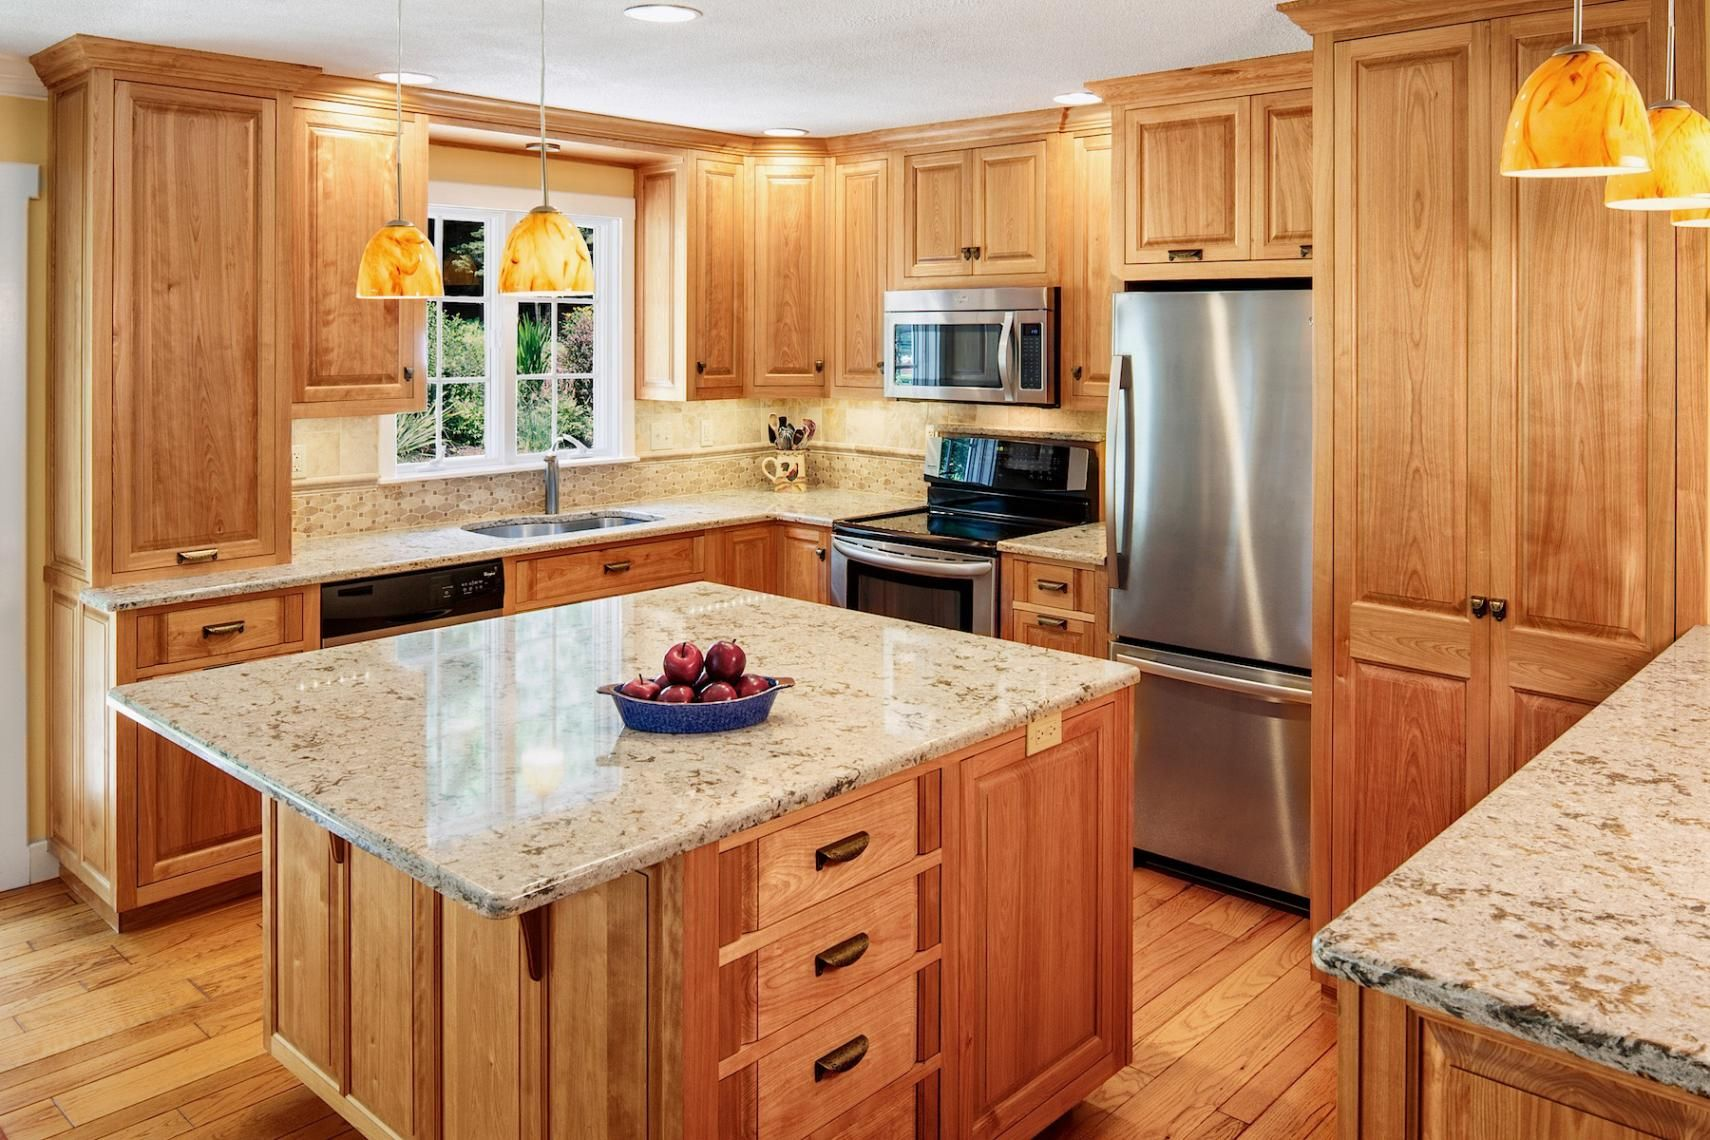 Custom Cabinetry And Kitchens Birch Kitchen Cabinets Kitchen Cabinets And Cupboards Outdoor Kitchen Cabinets